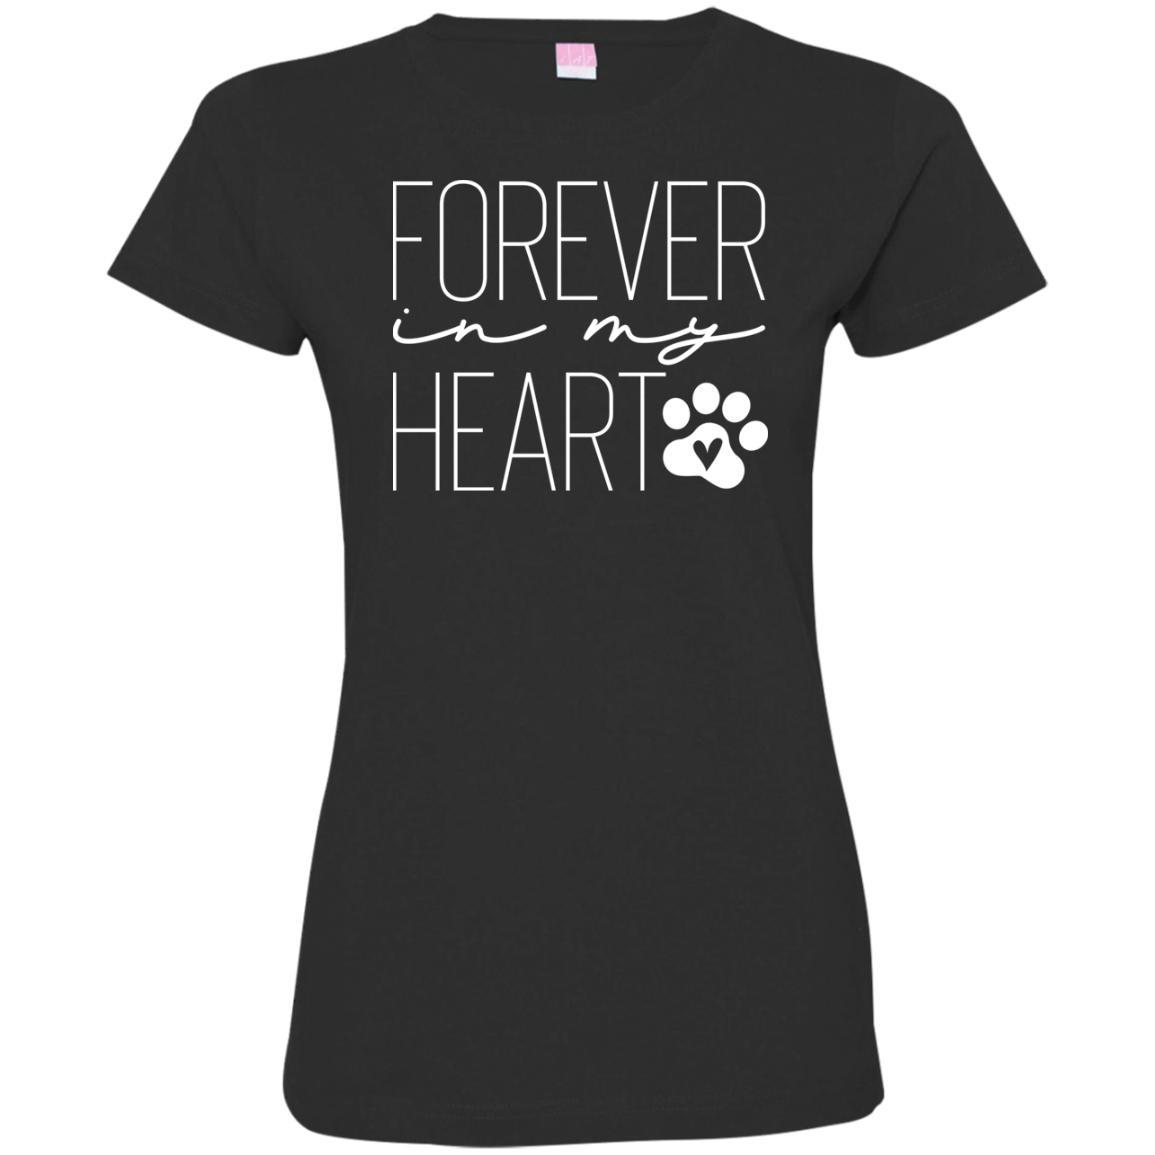 Forever In My Heart Fitted T-Shirt For Women